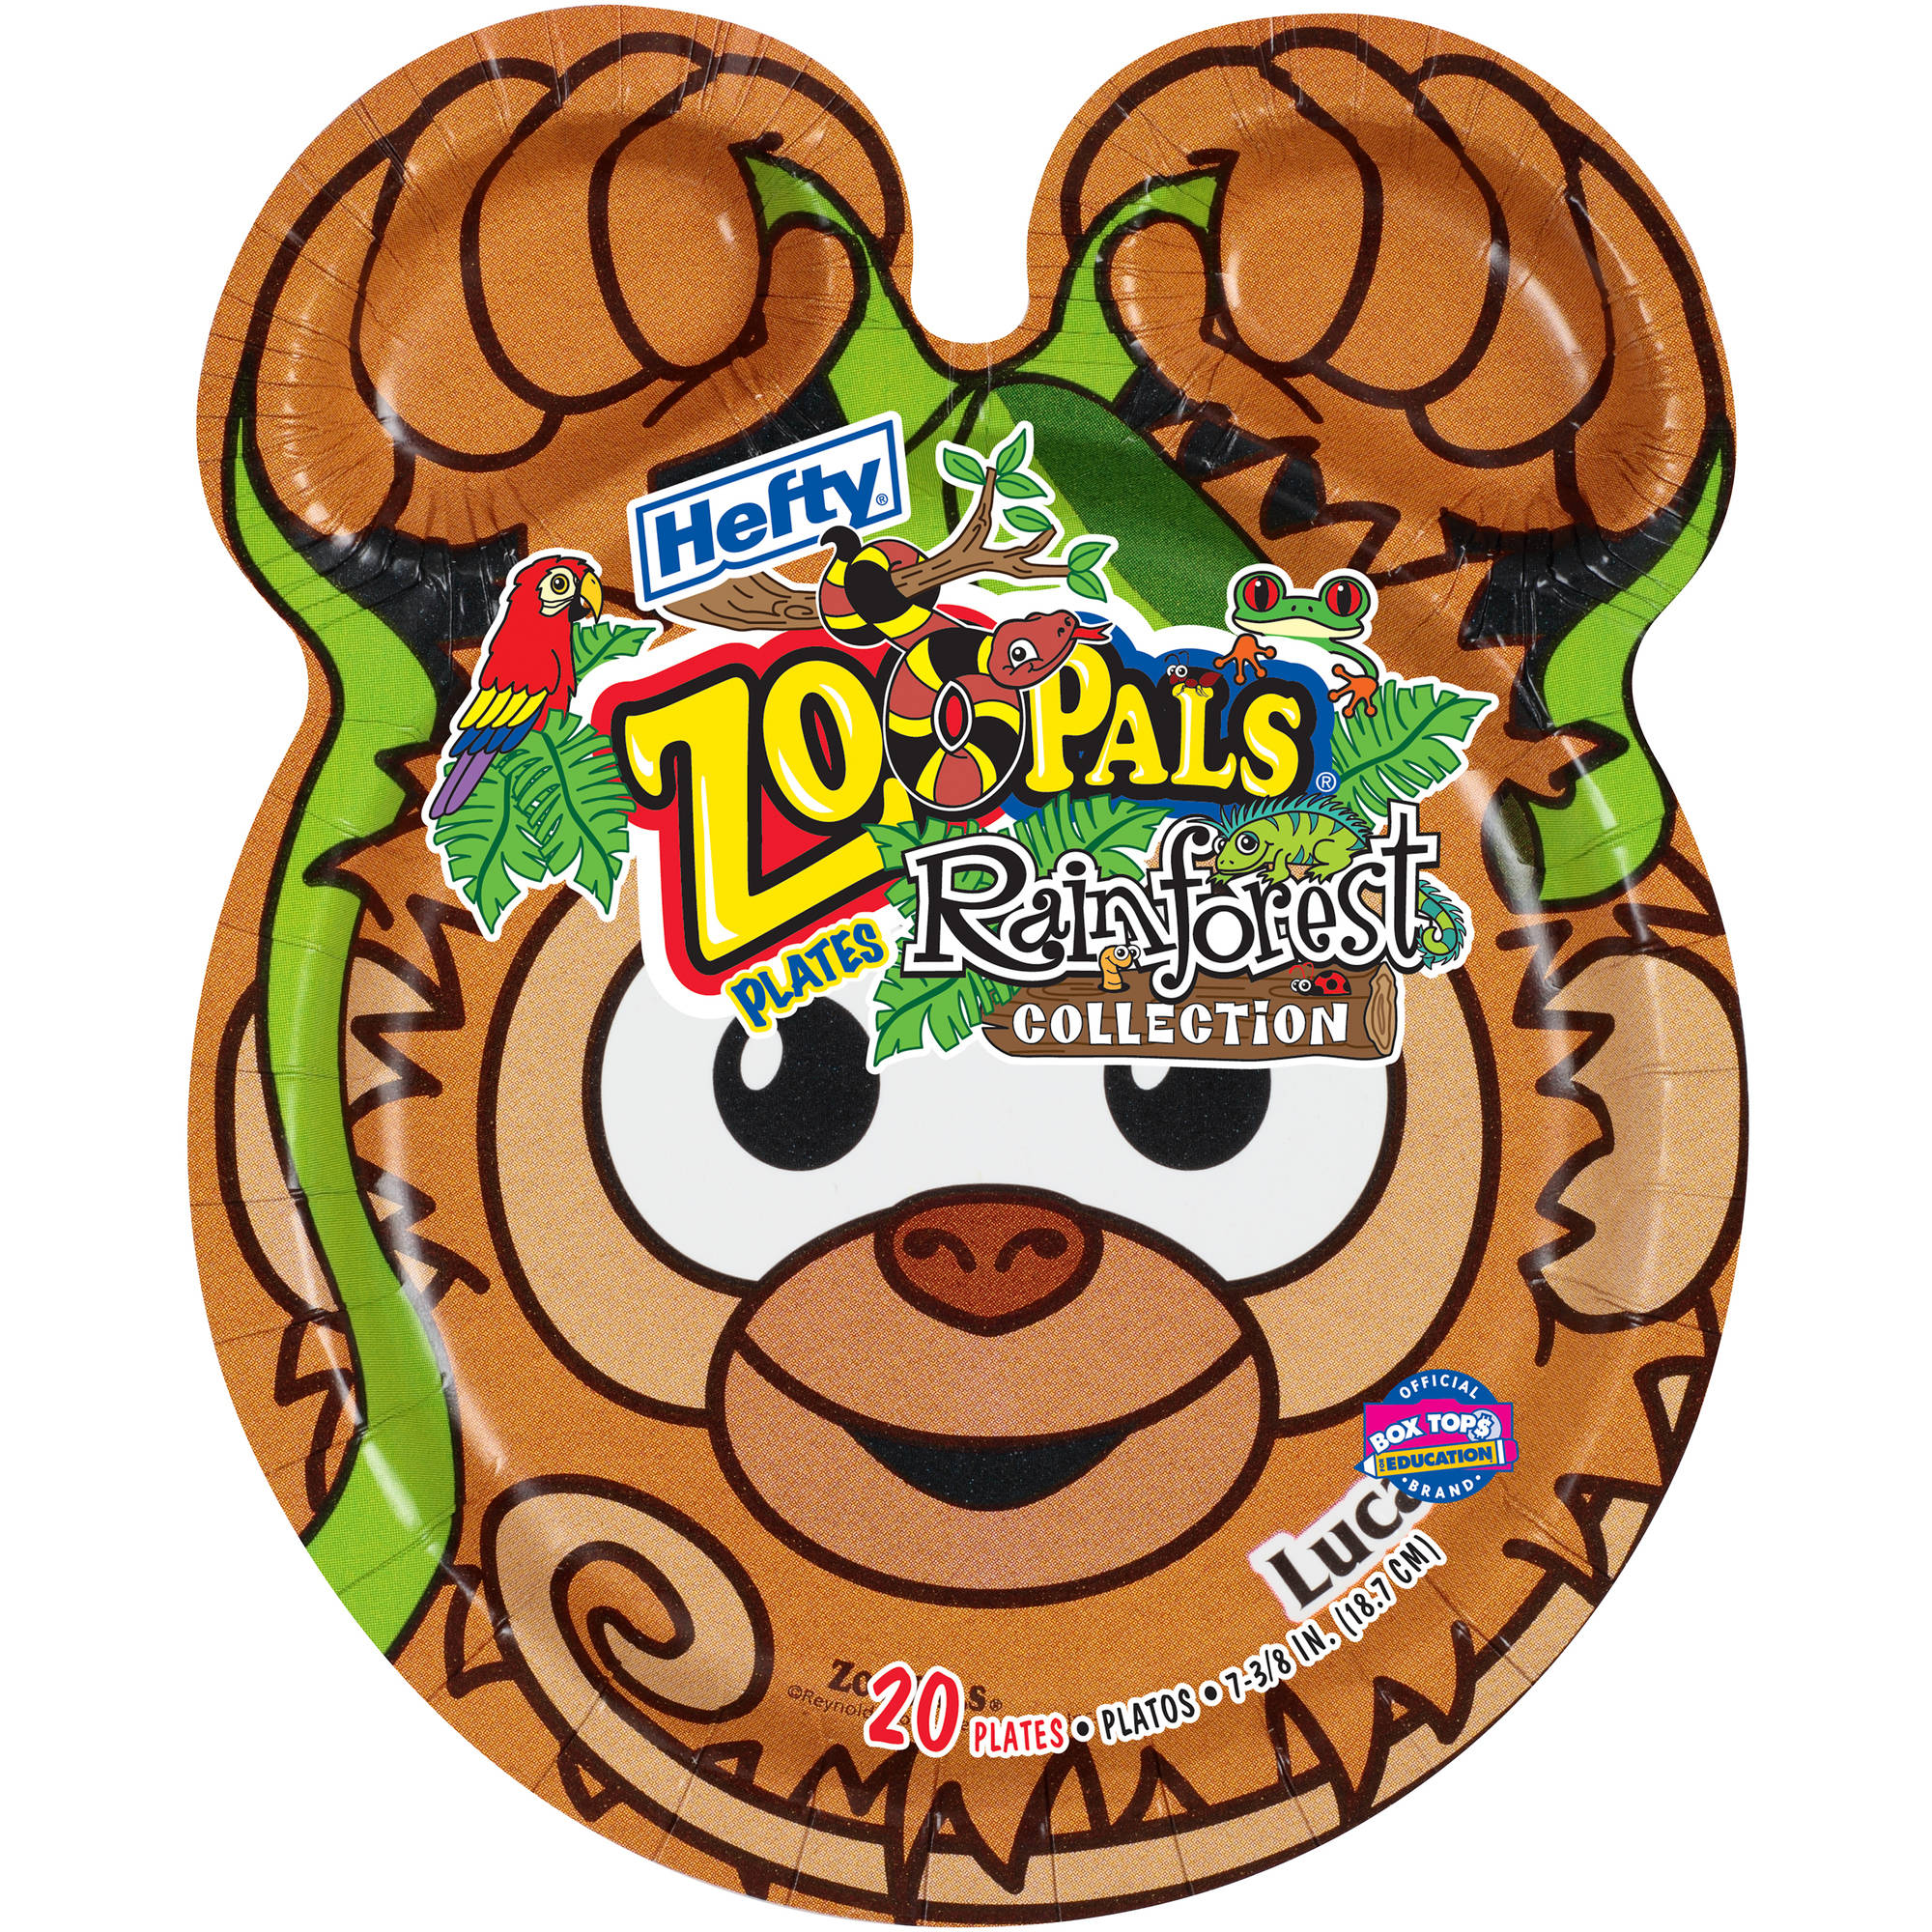 Hefty Zoo Pals Rainforest Collection Plates 20 count  sc 1 st  Walmart & Hefty Zoo Pals Rainforest Collection Plates 20 count - Walmart.com